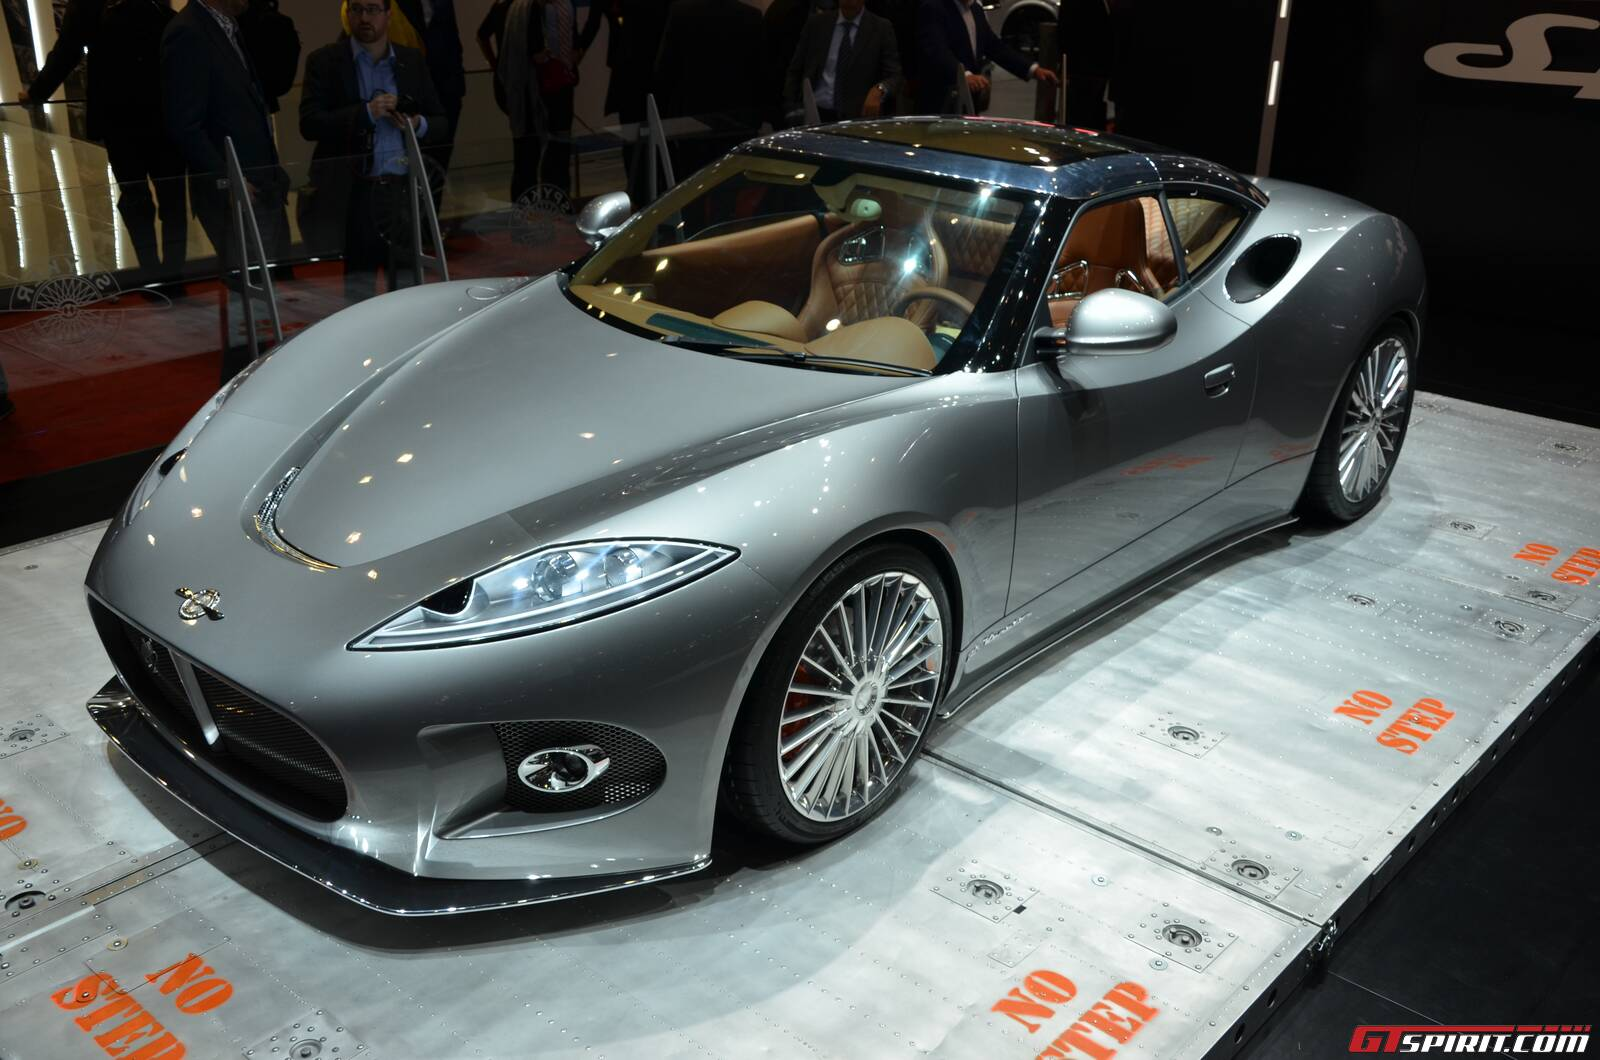 Spyker B6 Venator To Cost 135k In U S New C8 And Suv On The Cards